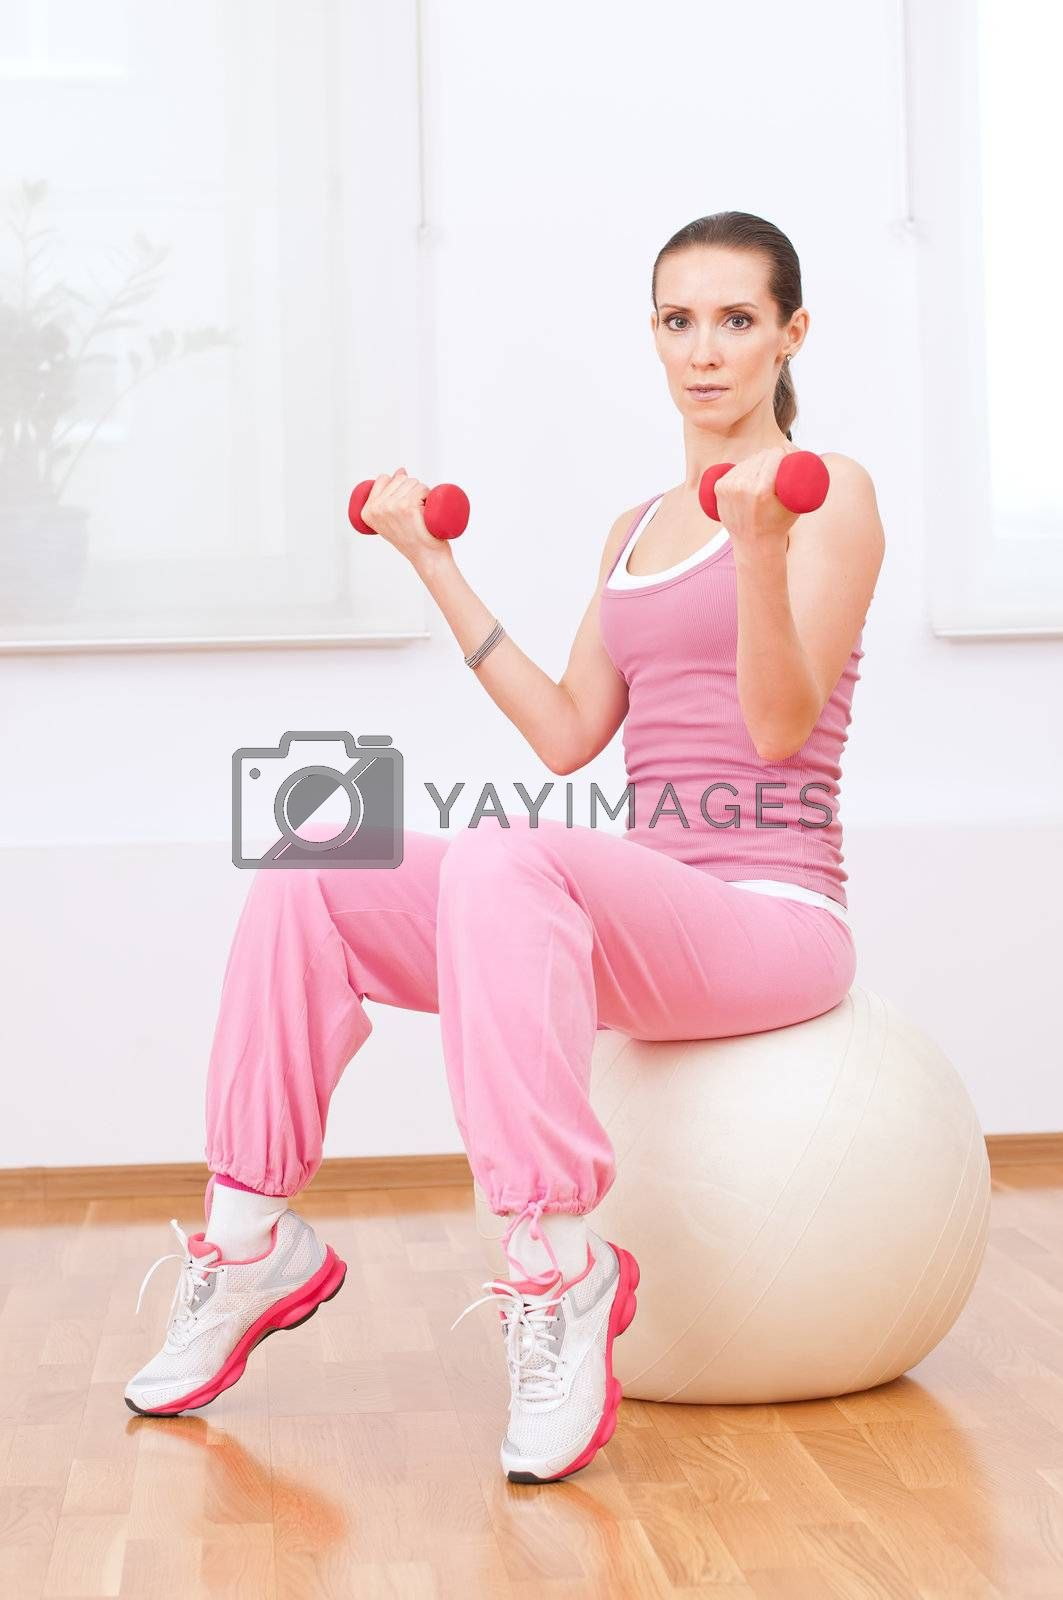 Woman doing dumbbell exercise at sport gym by markin